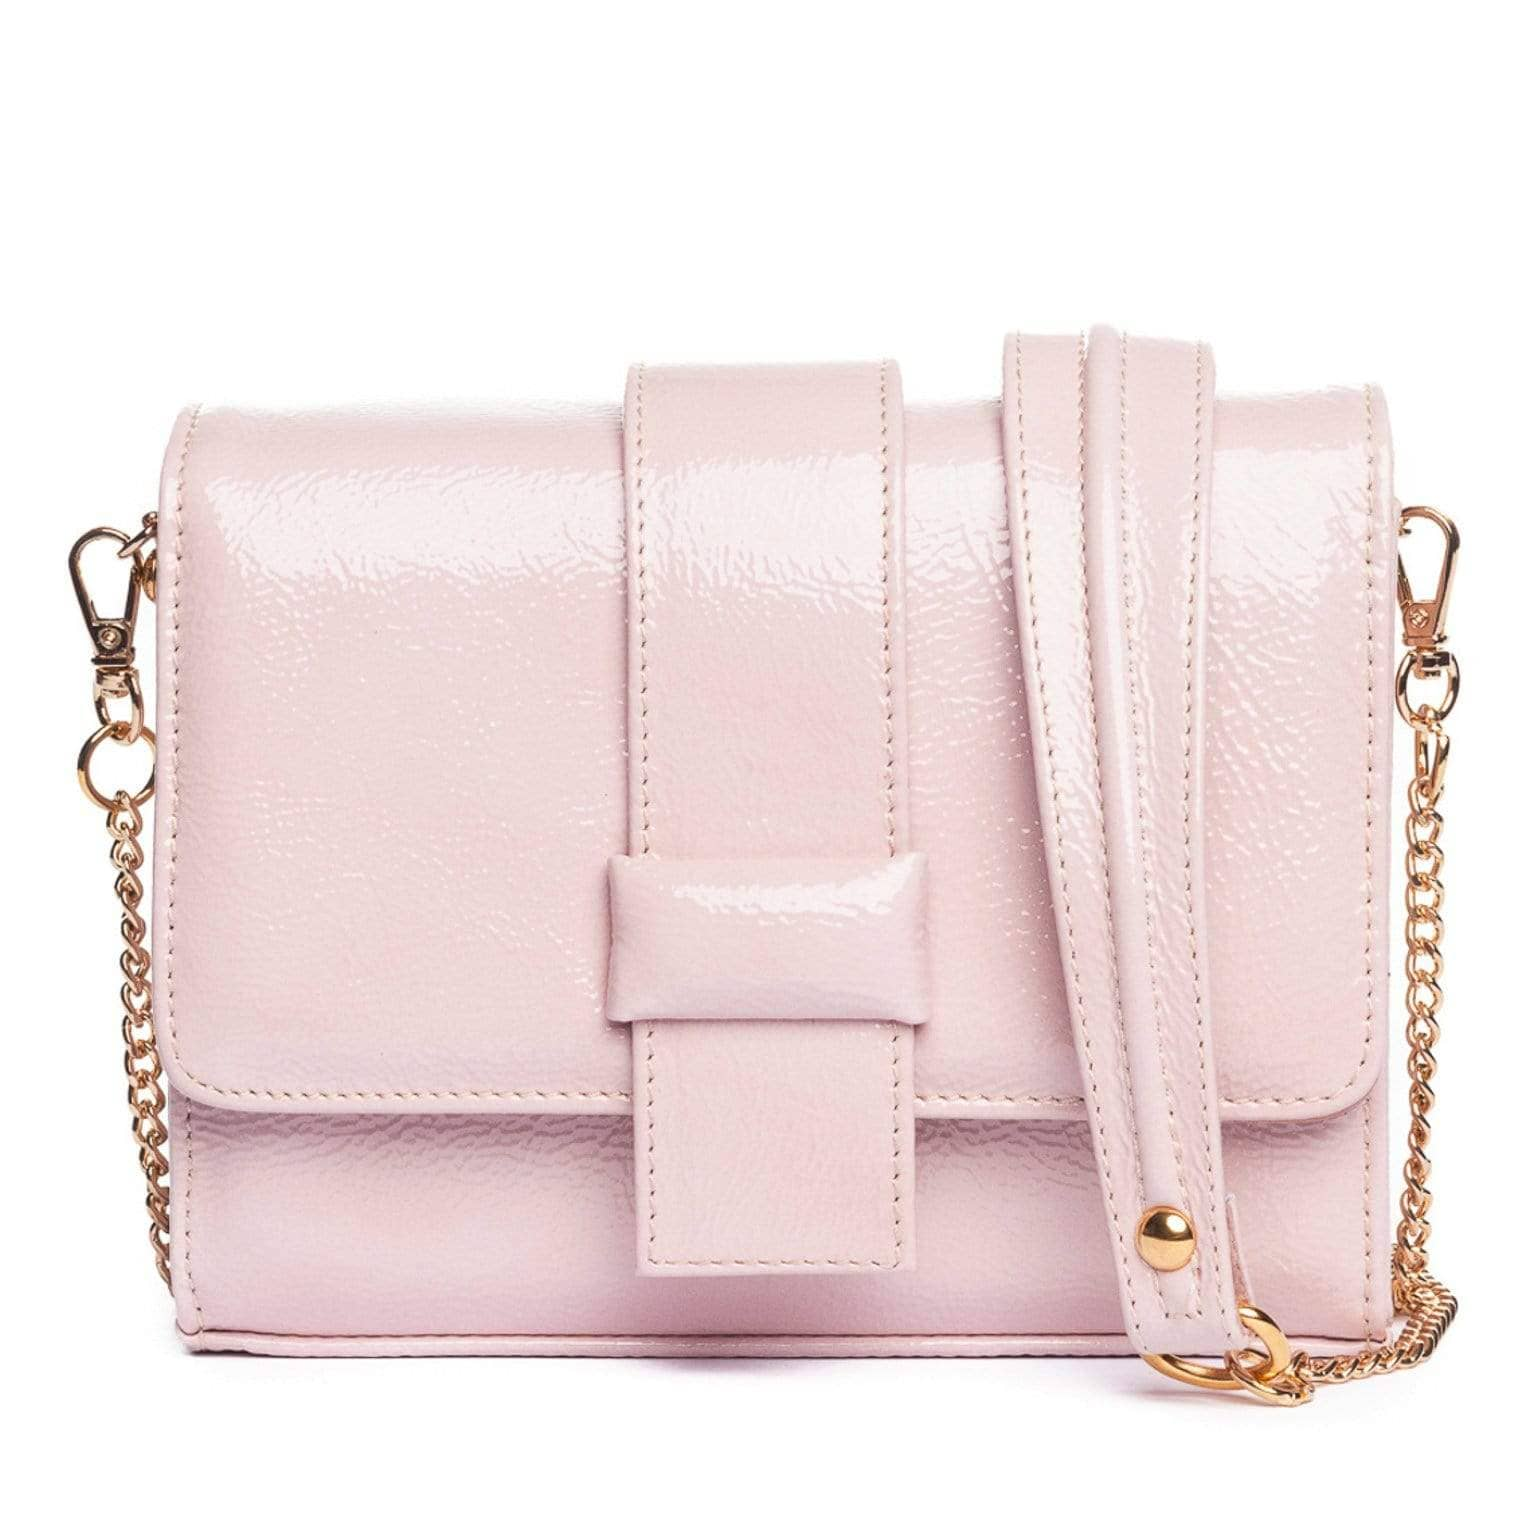 Pink Patent Leather Purse - Mini Bag with Chain